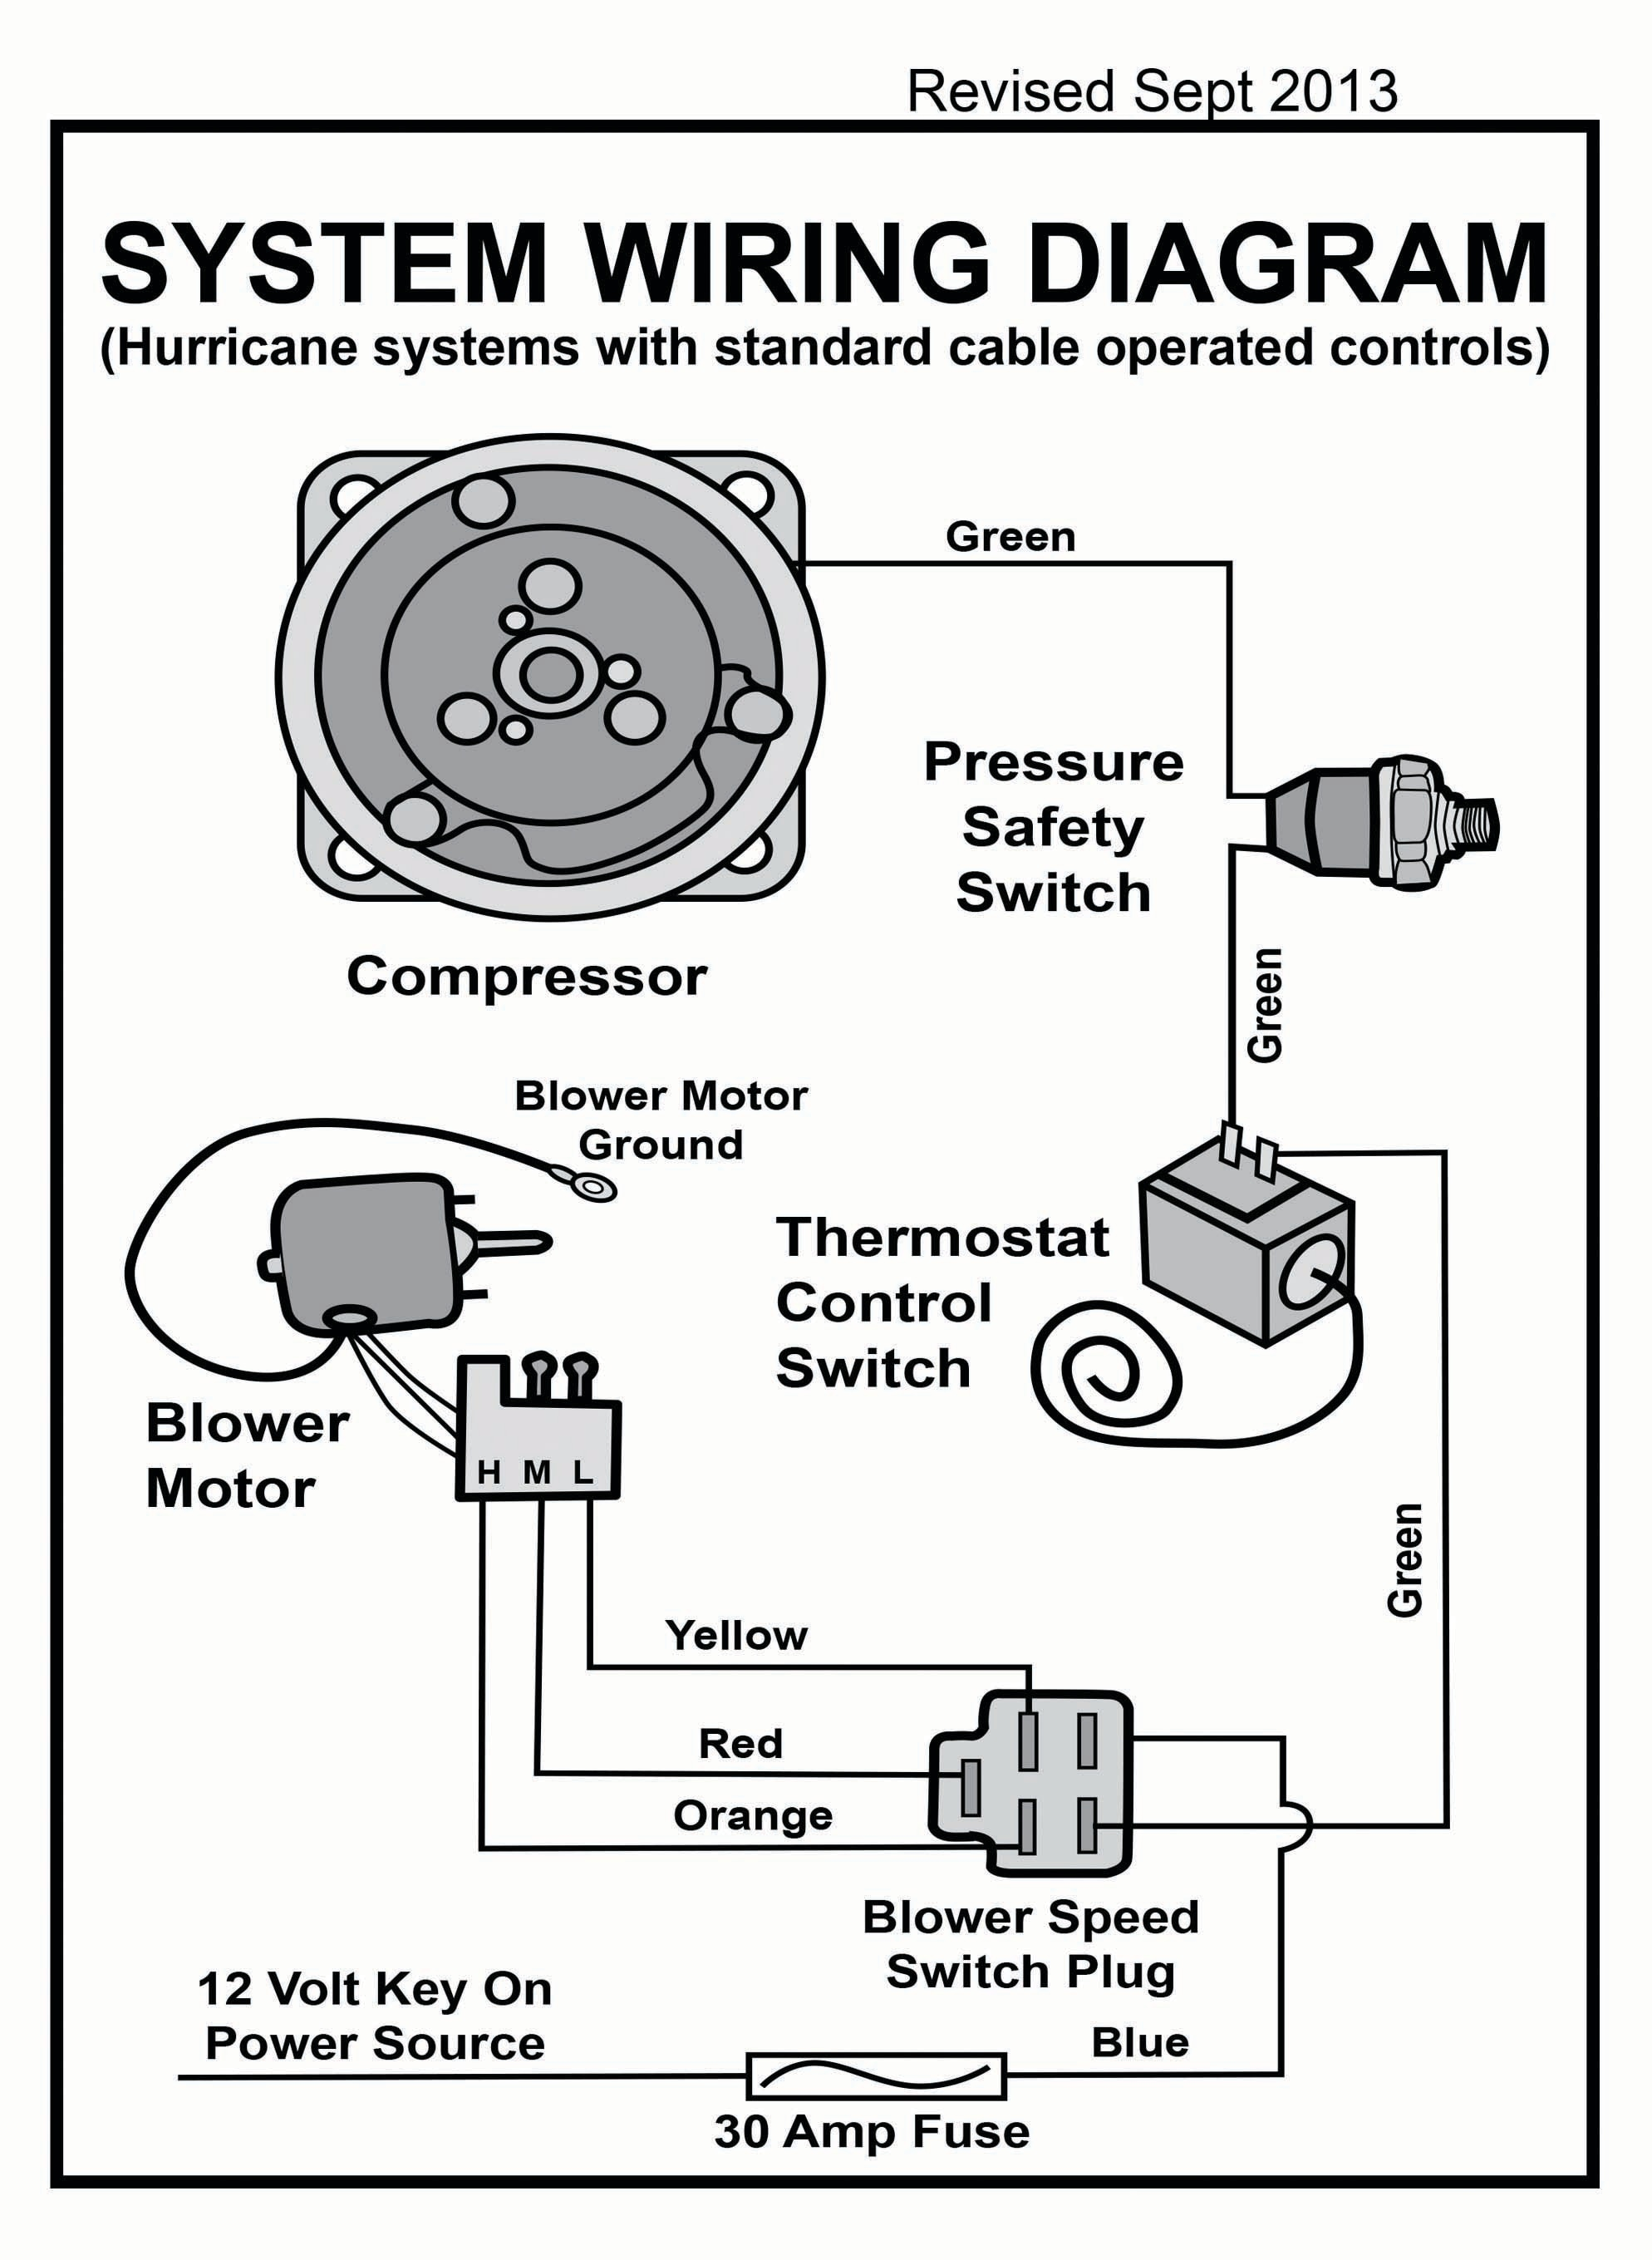 medium resolution of installing old air products u0027 hurricane heat u0026 a c hot rod networka binary safety switch shown is included to protect the system a trinary switch